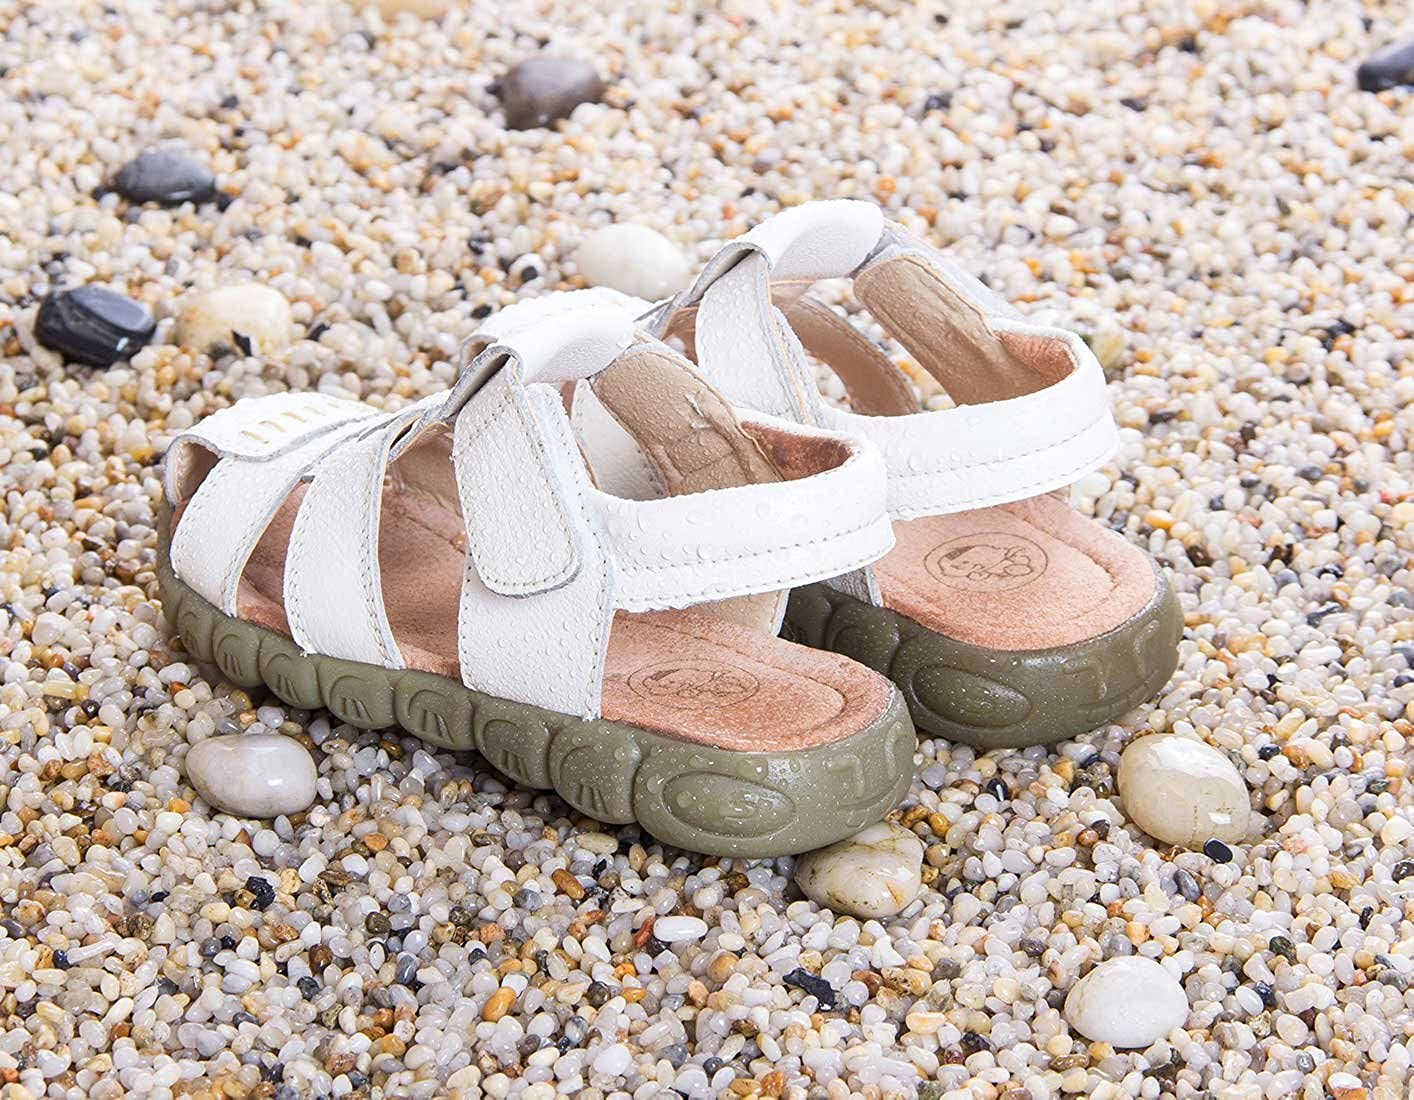 Happy Cherry Unisex Baby Toddler 100/% Leather Anti-Slip Closed Toe Oxford Sole Outdoor Sandal Shoes Brown